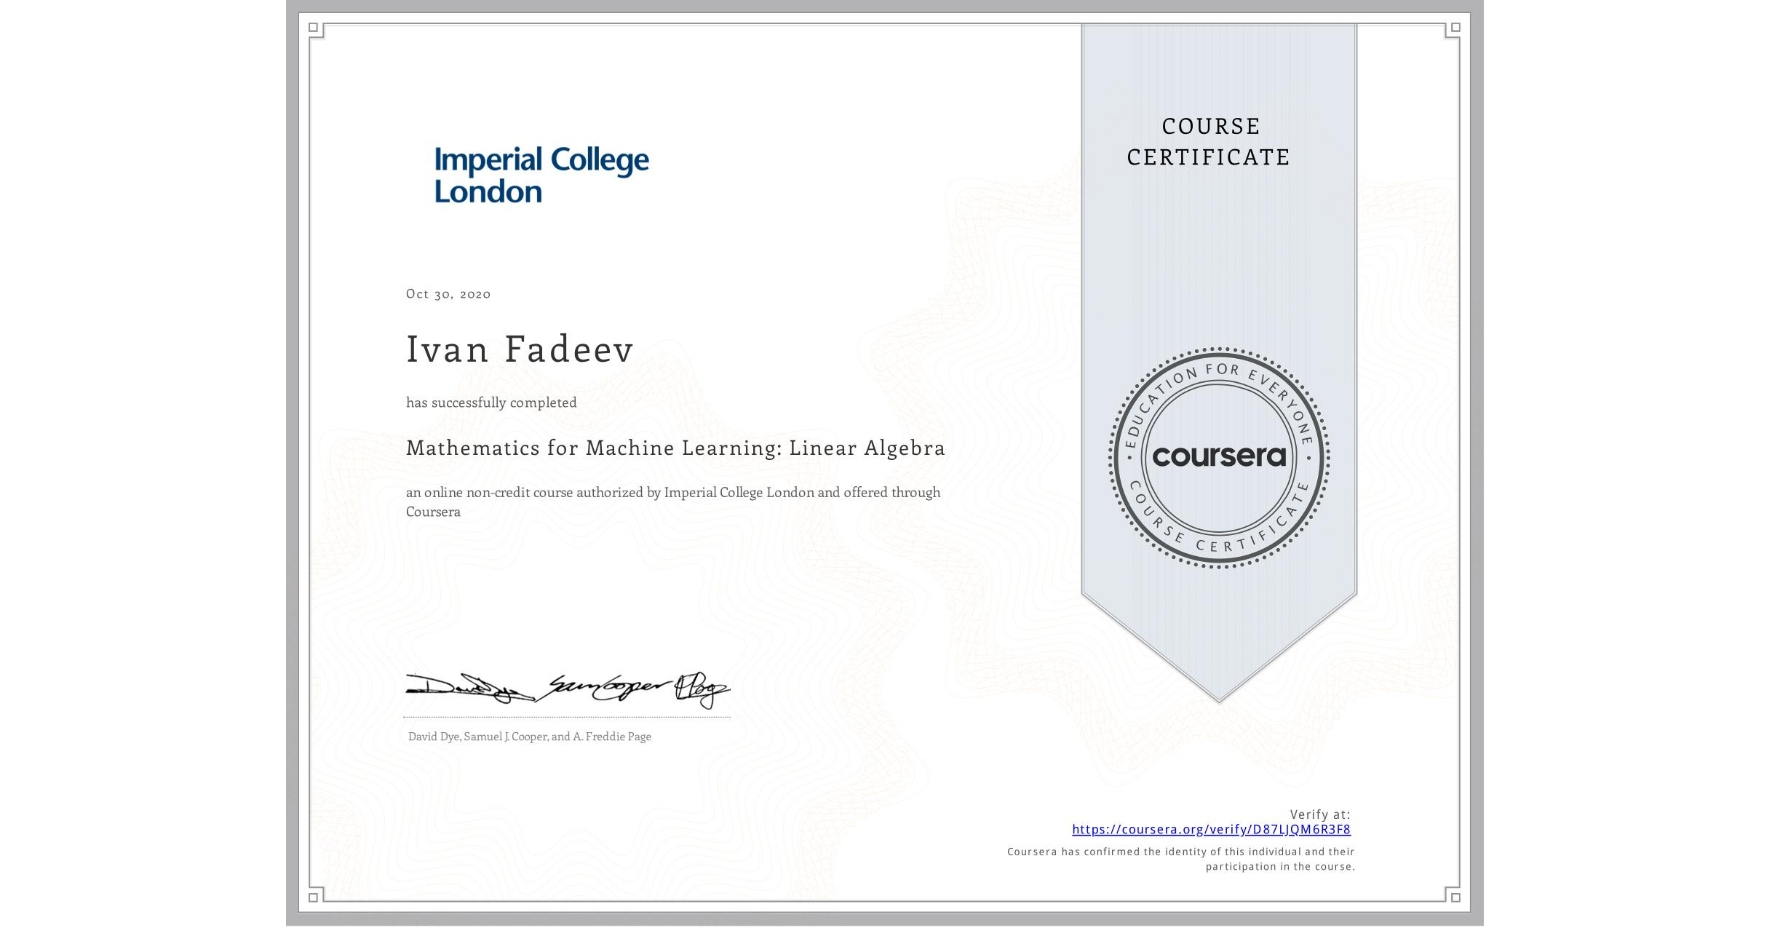 View certificate for Ivan Fadeev, Mathematics for Machine Learning: Linear Algebra, an online non-credit course authorized by Imperial College London and offered through Coursera